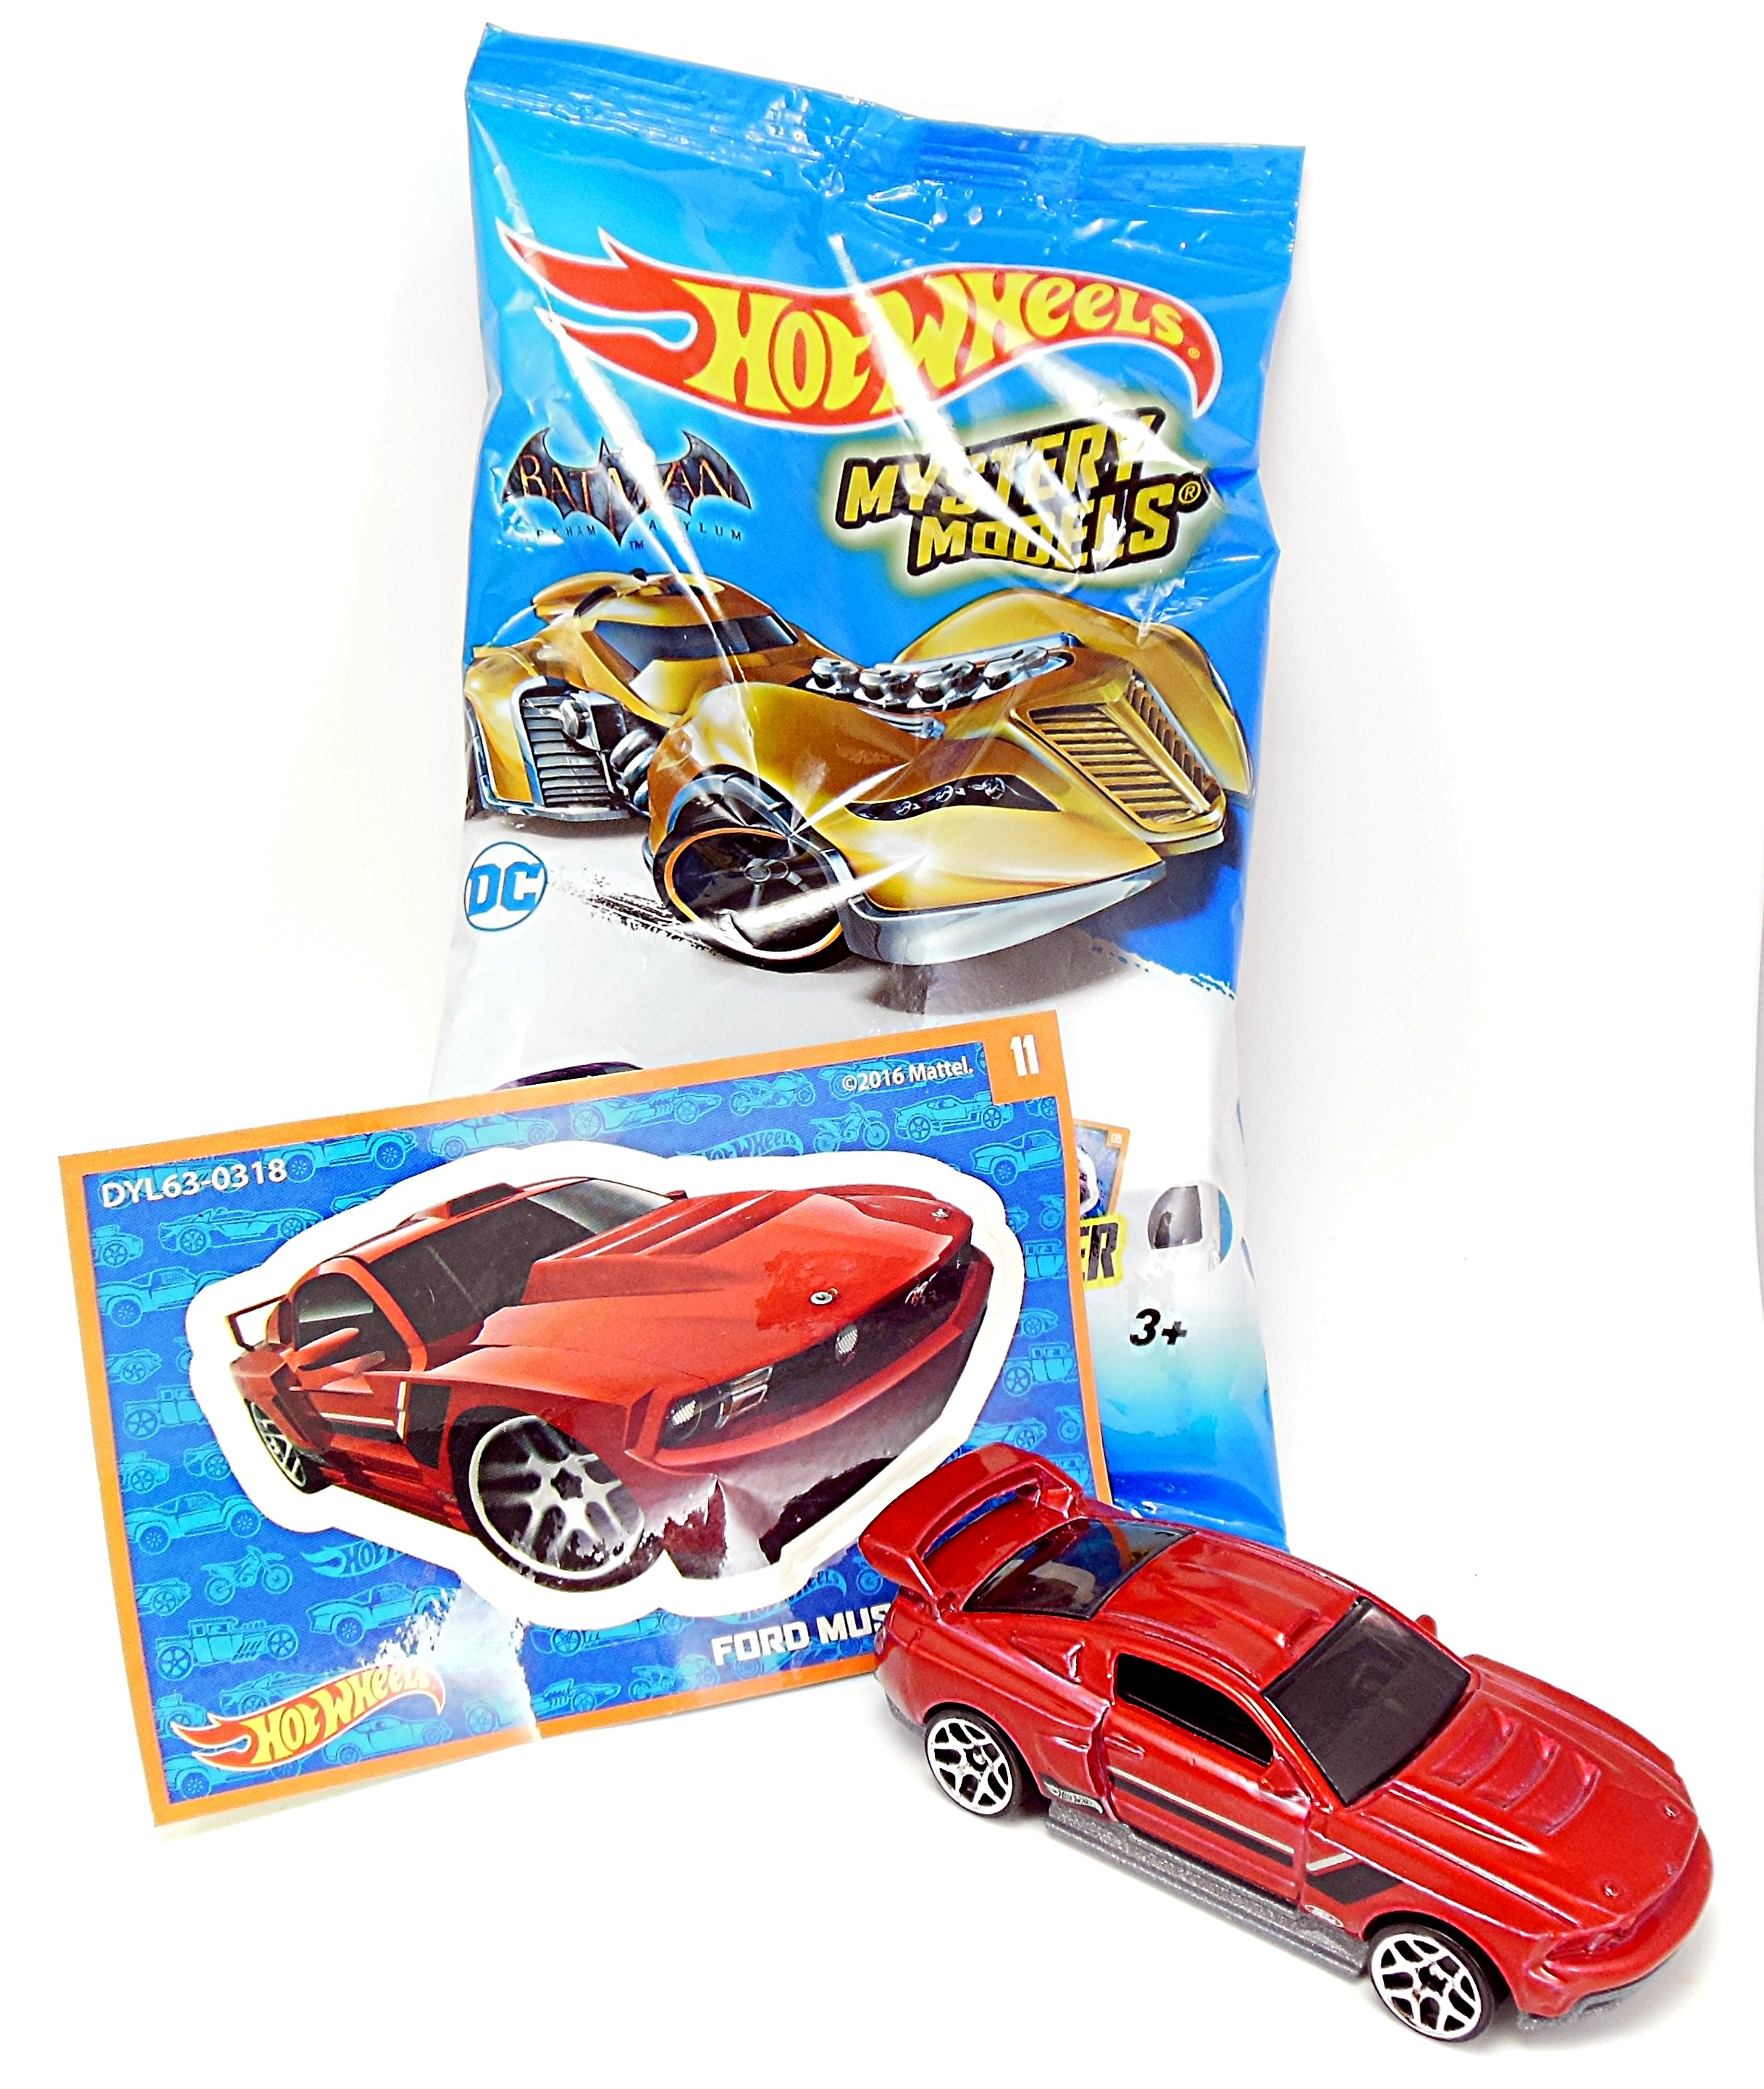 2017 Mystery Models Hot Wheels Newsletter